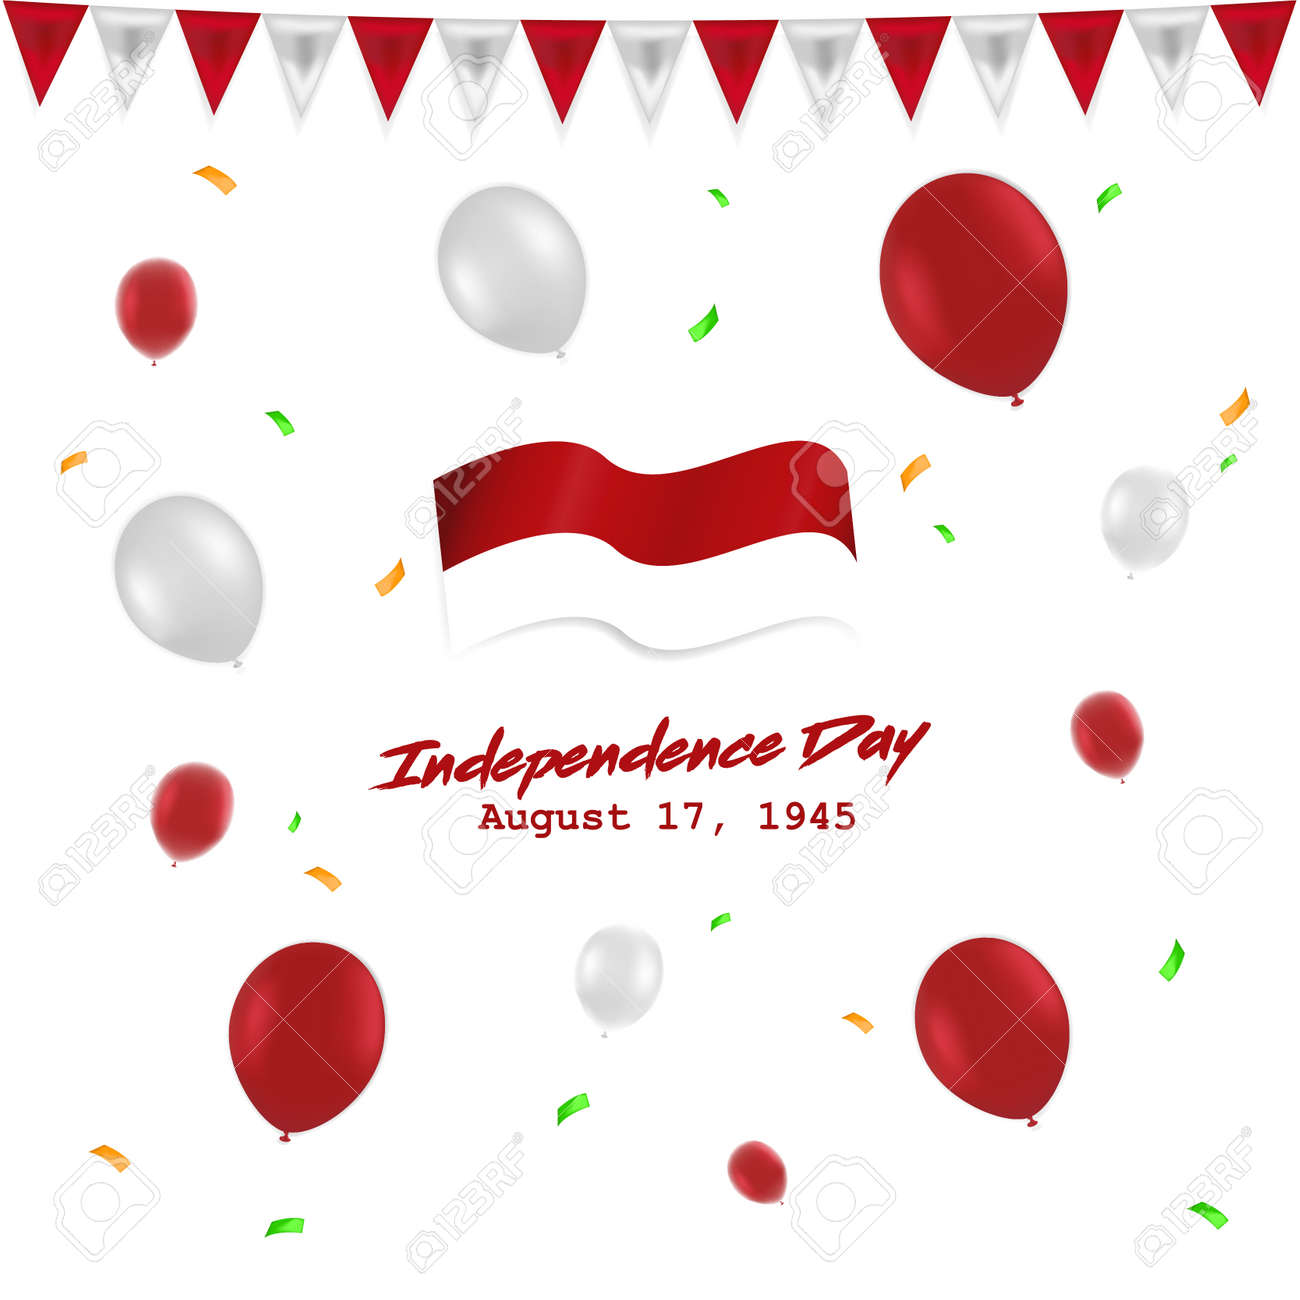 Independece day 17 August Indonesia with red white baloon, flag , and ribbon - 106866372